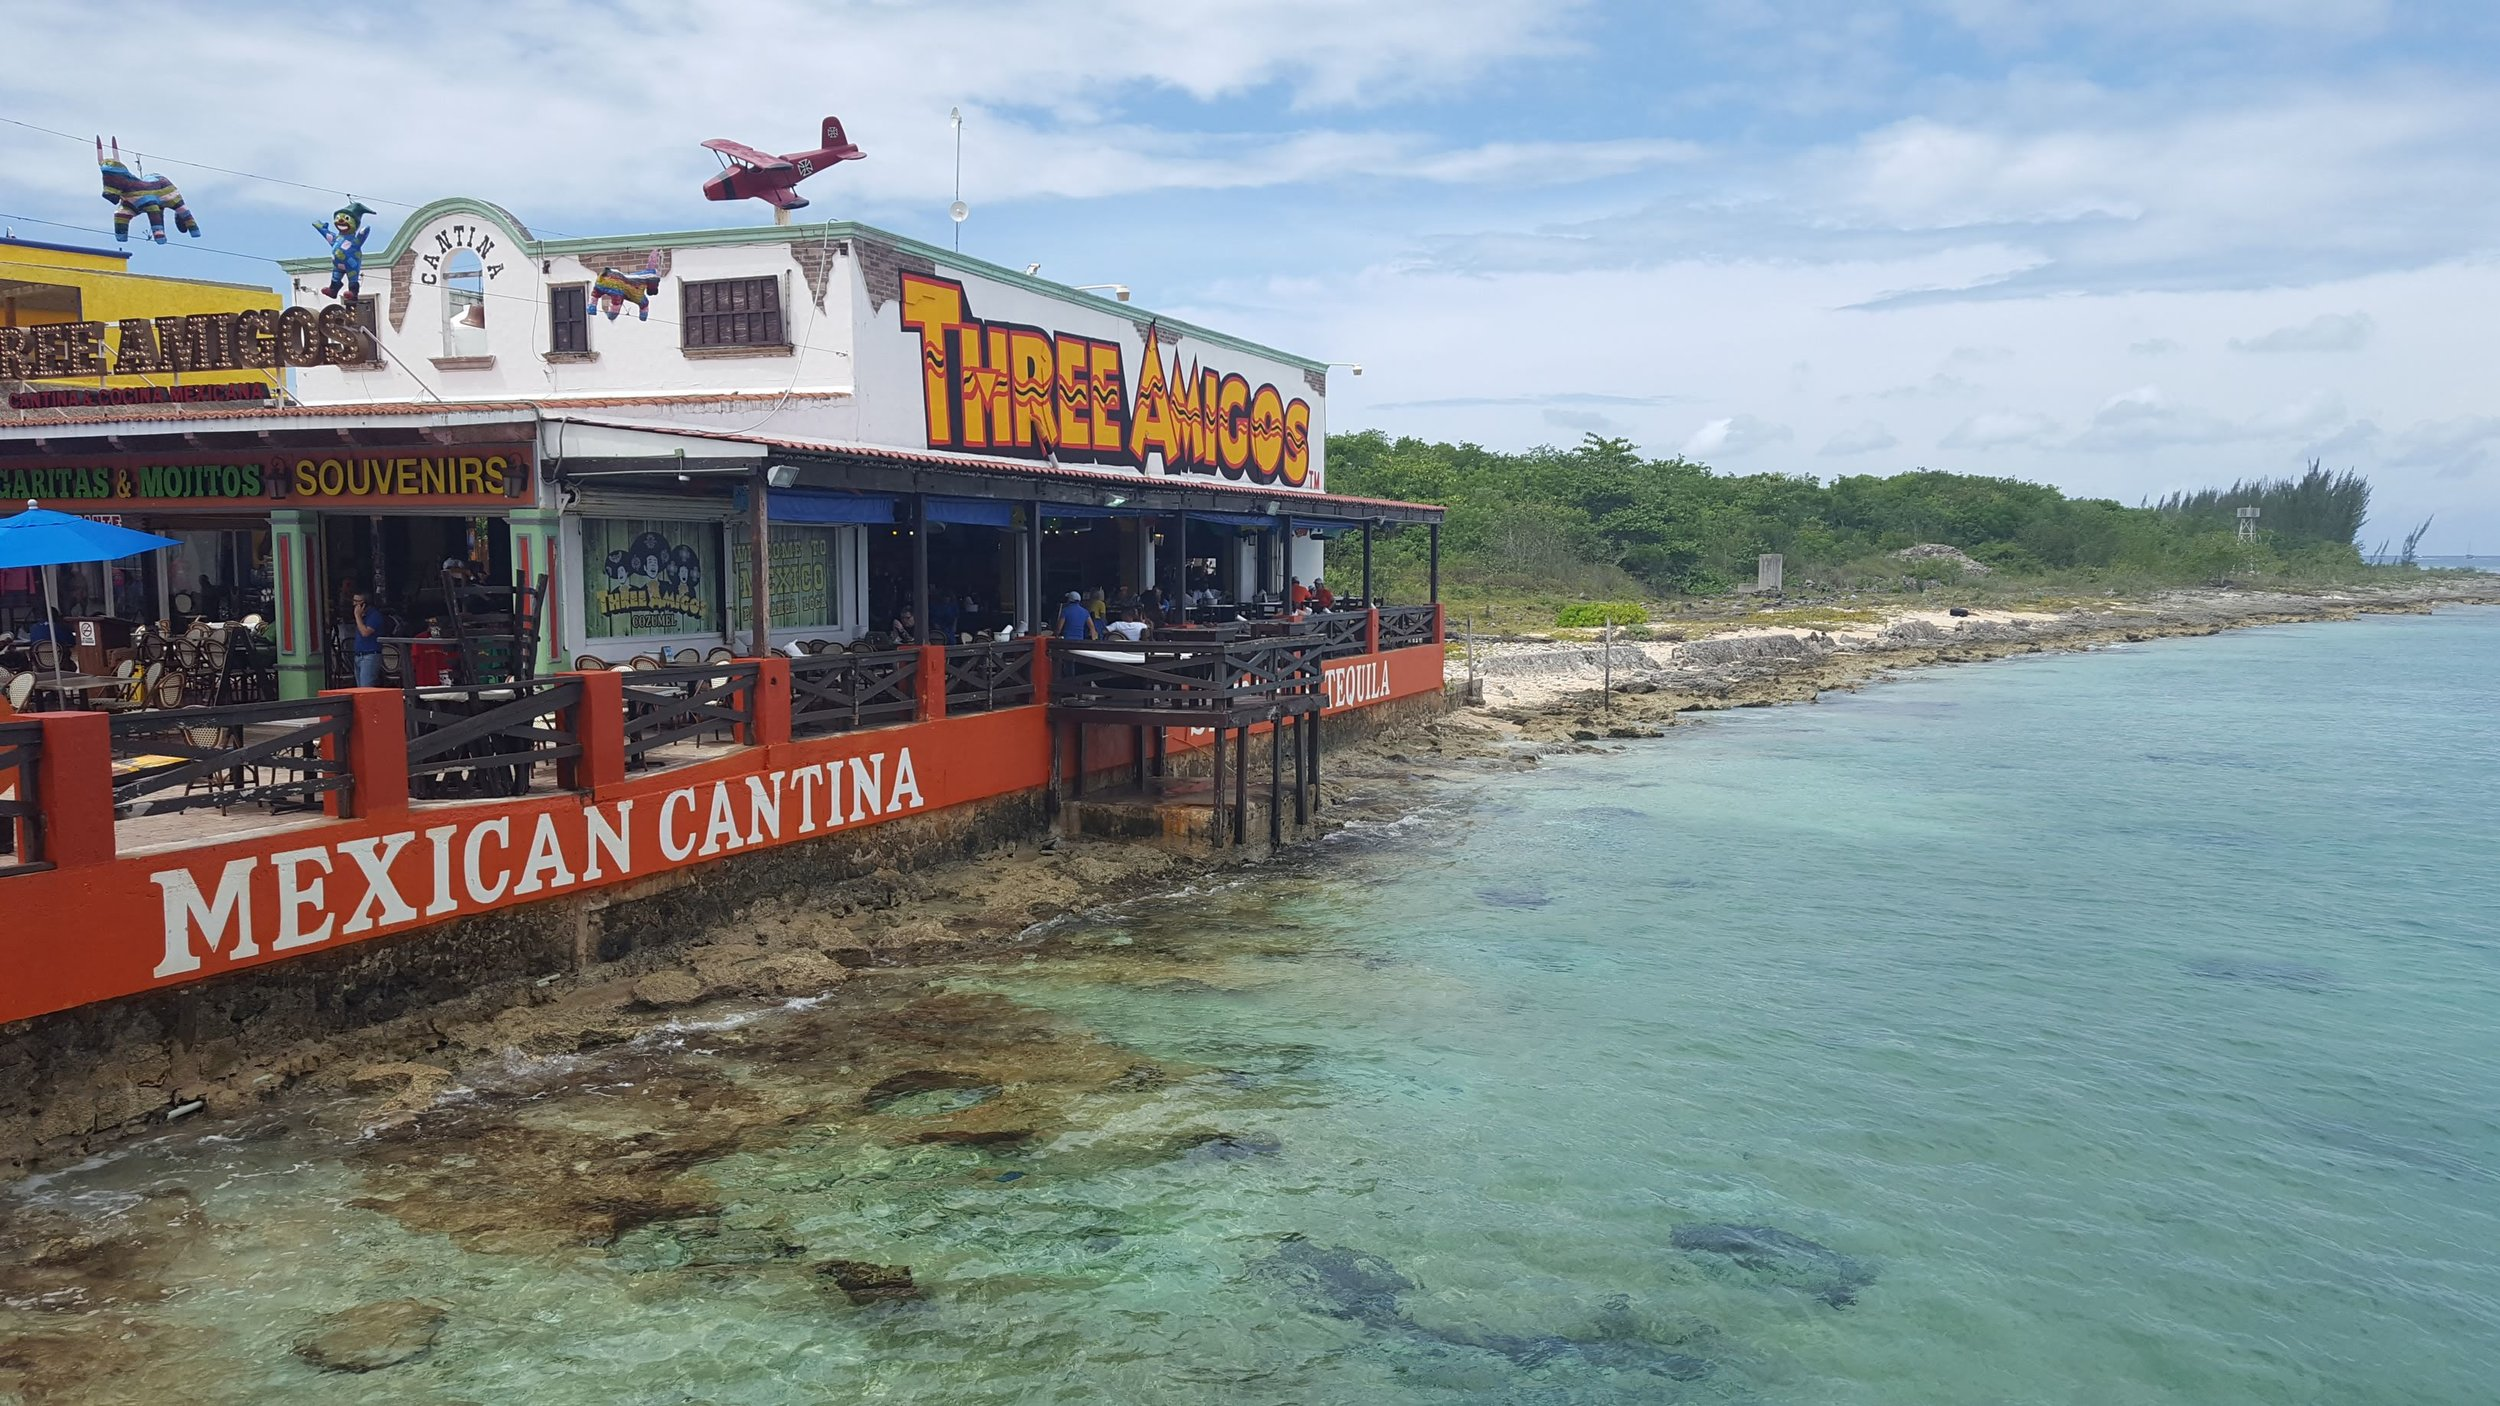 A popular tourist spot. Three Amigos is right on the edge of the pier when you get off of the boat and through Customs.